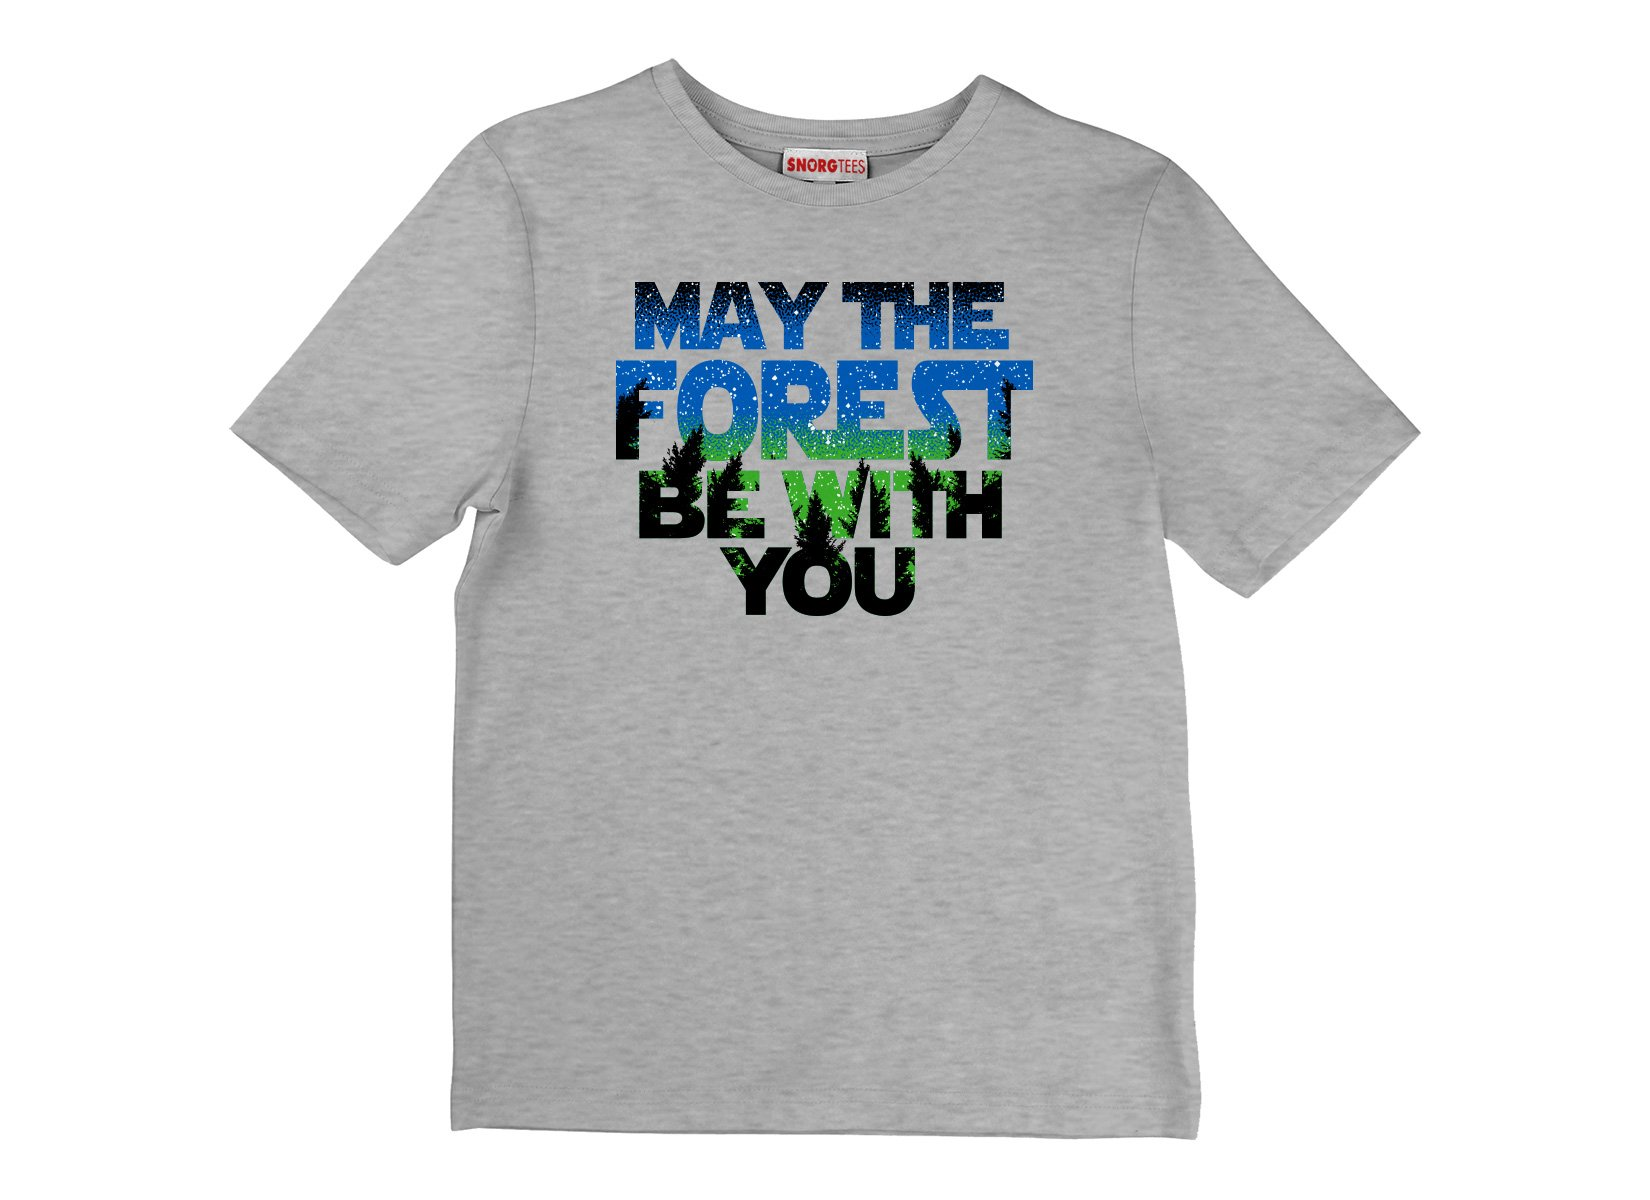 May The Forest Be With You on Kids T-Shirt